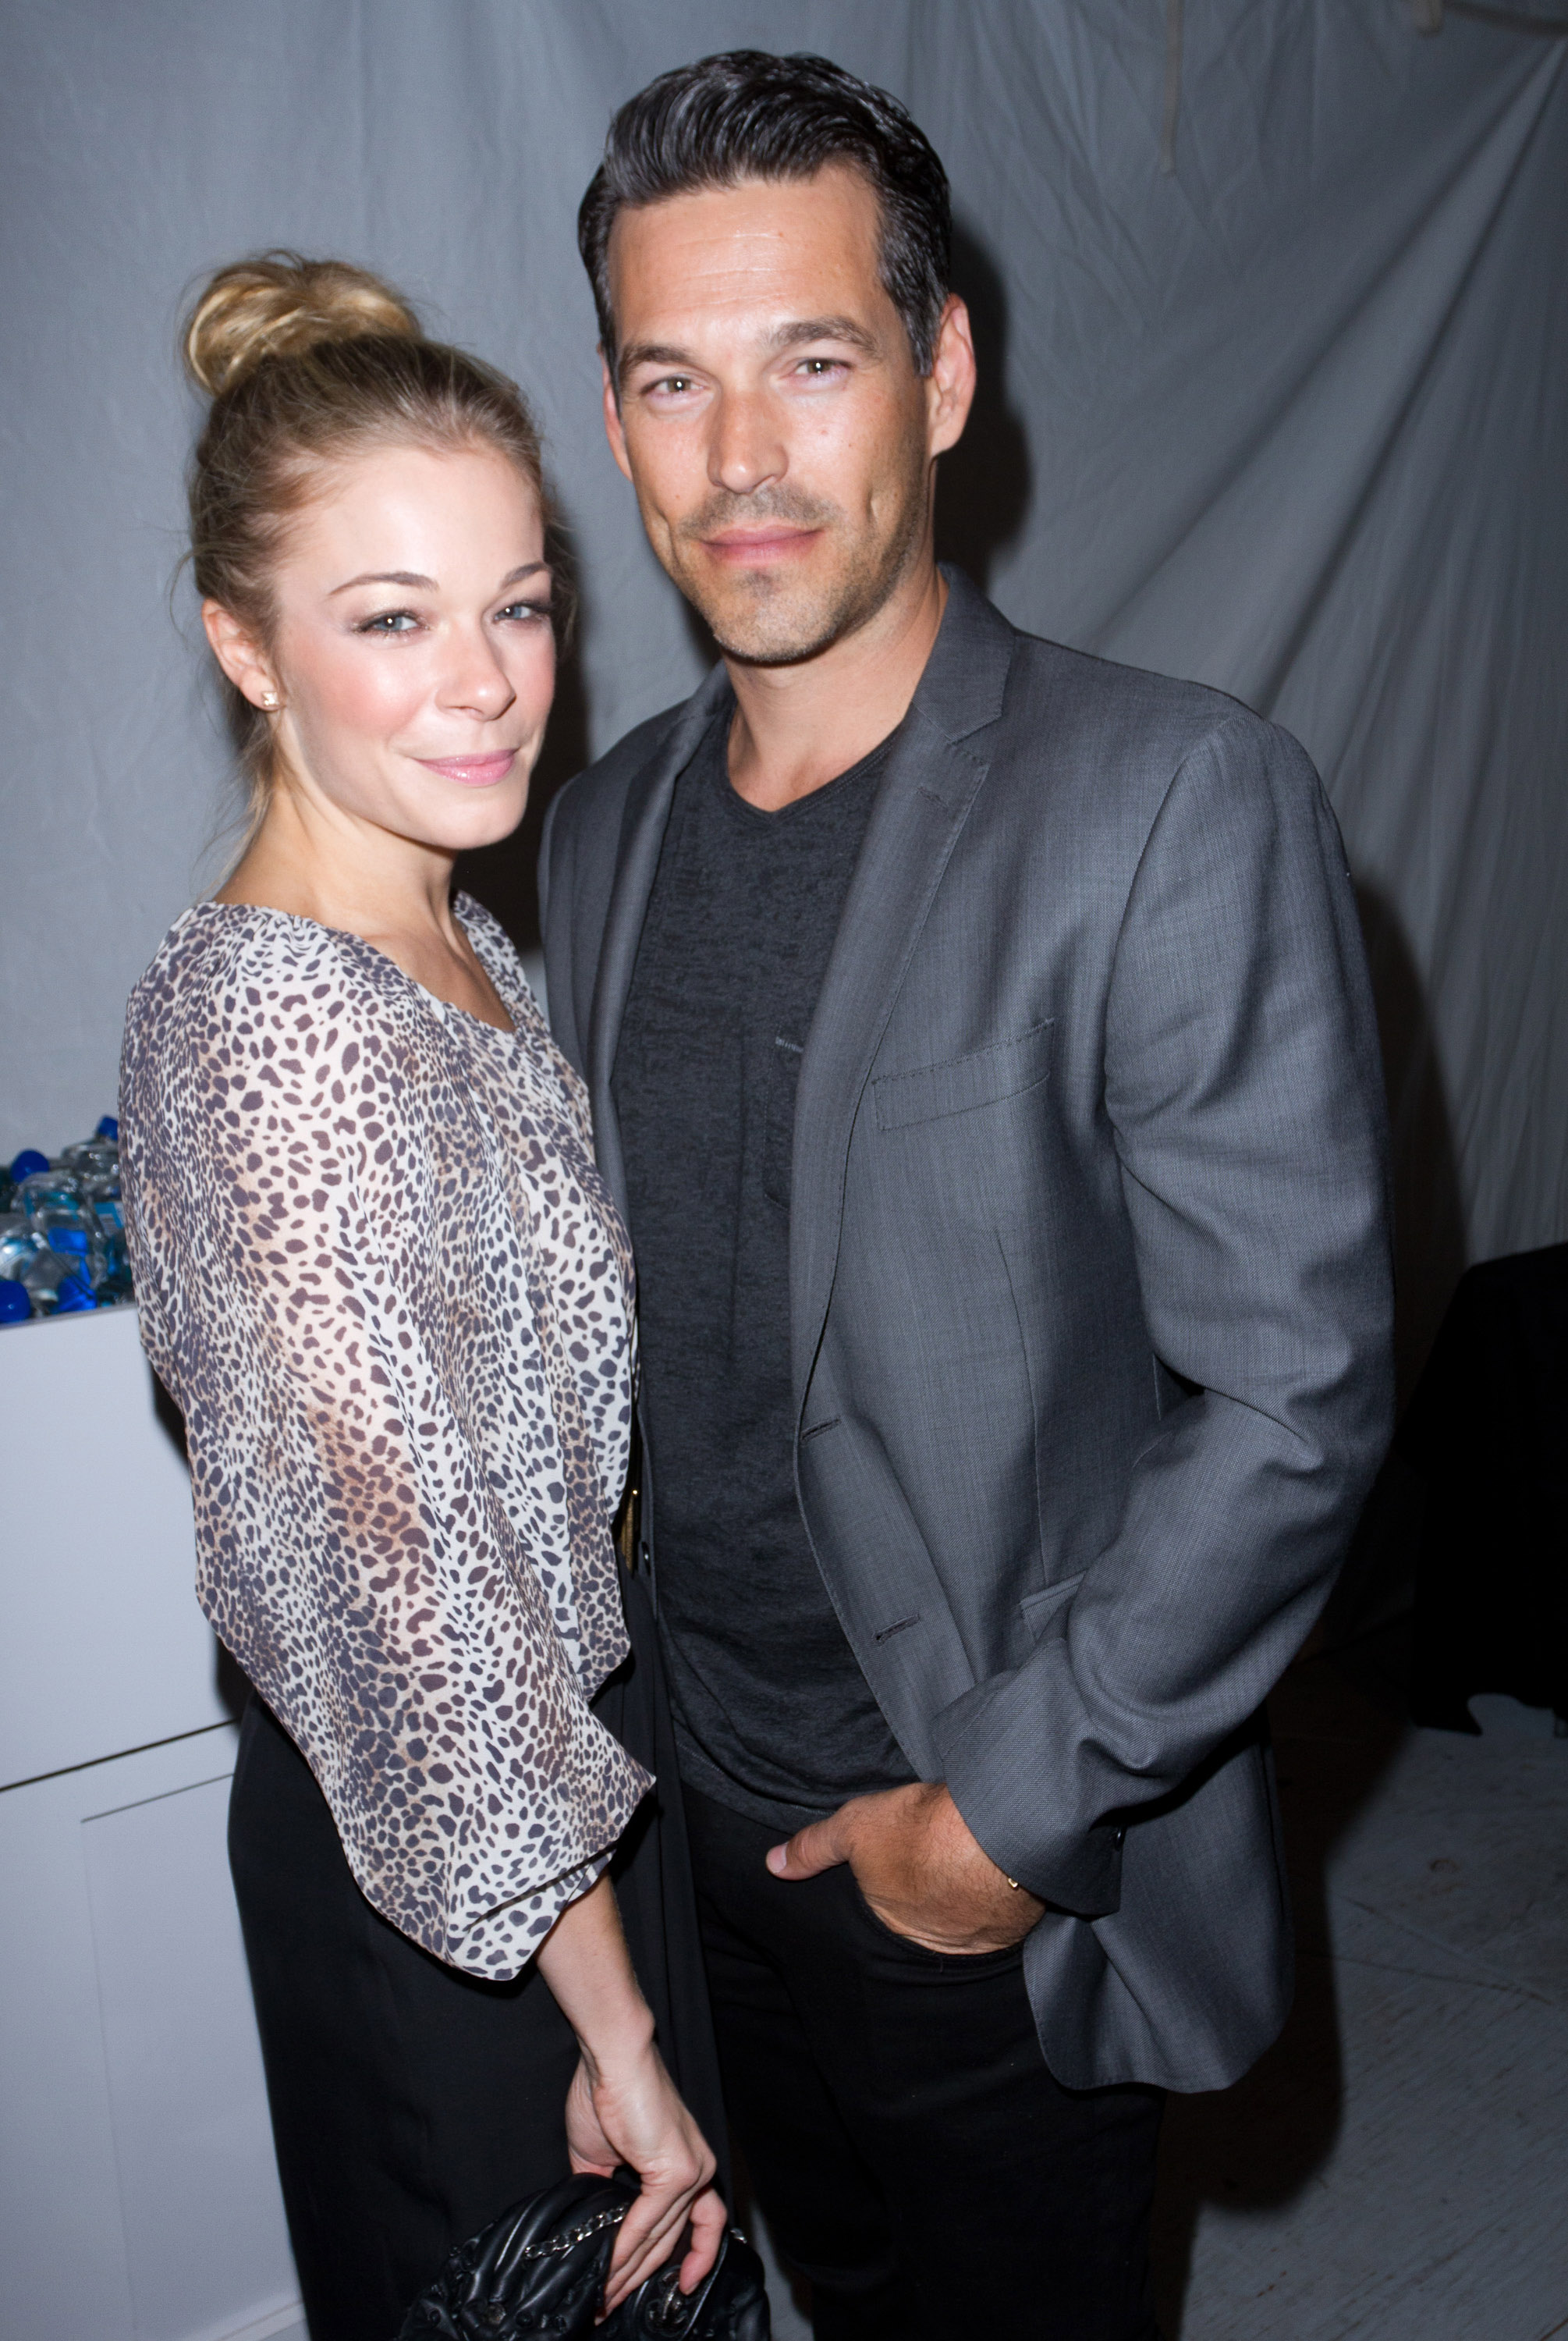 LeAnn Rimes and Eddie Cibrian at Lincoln Center.